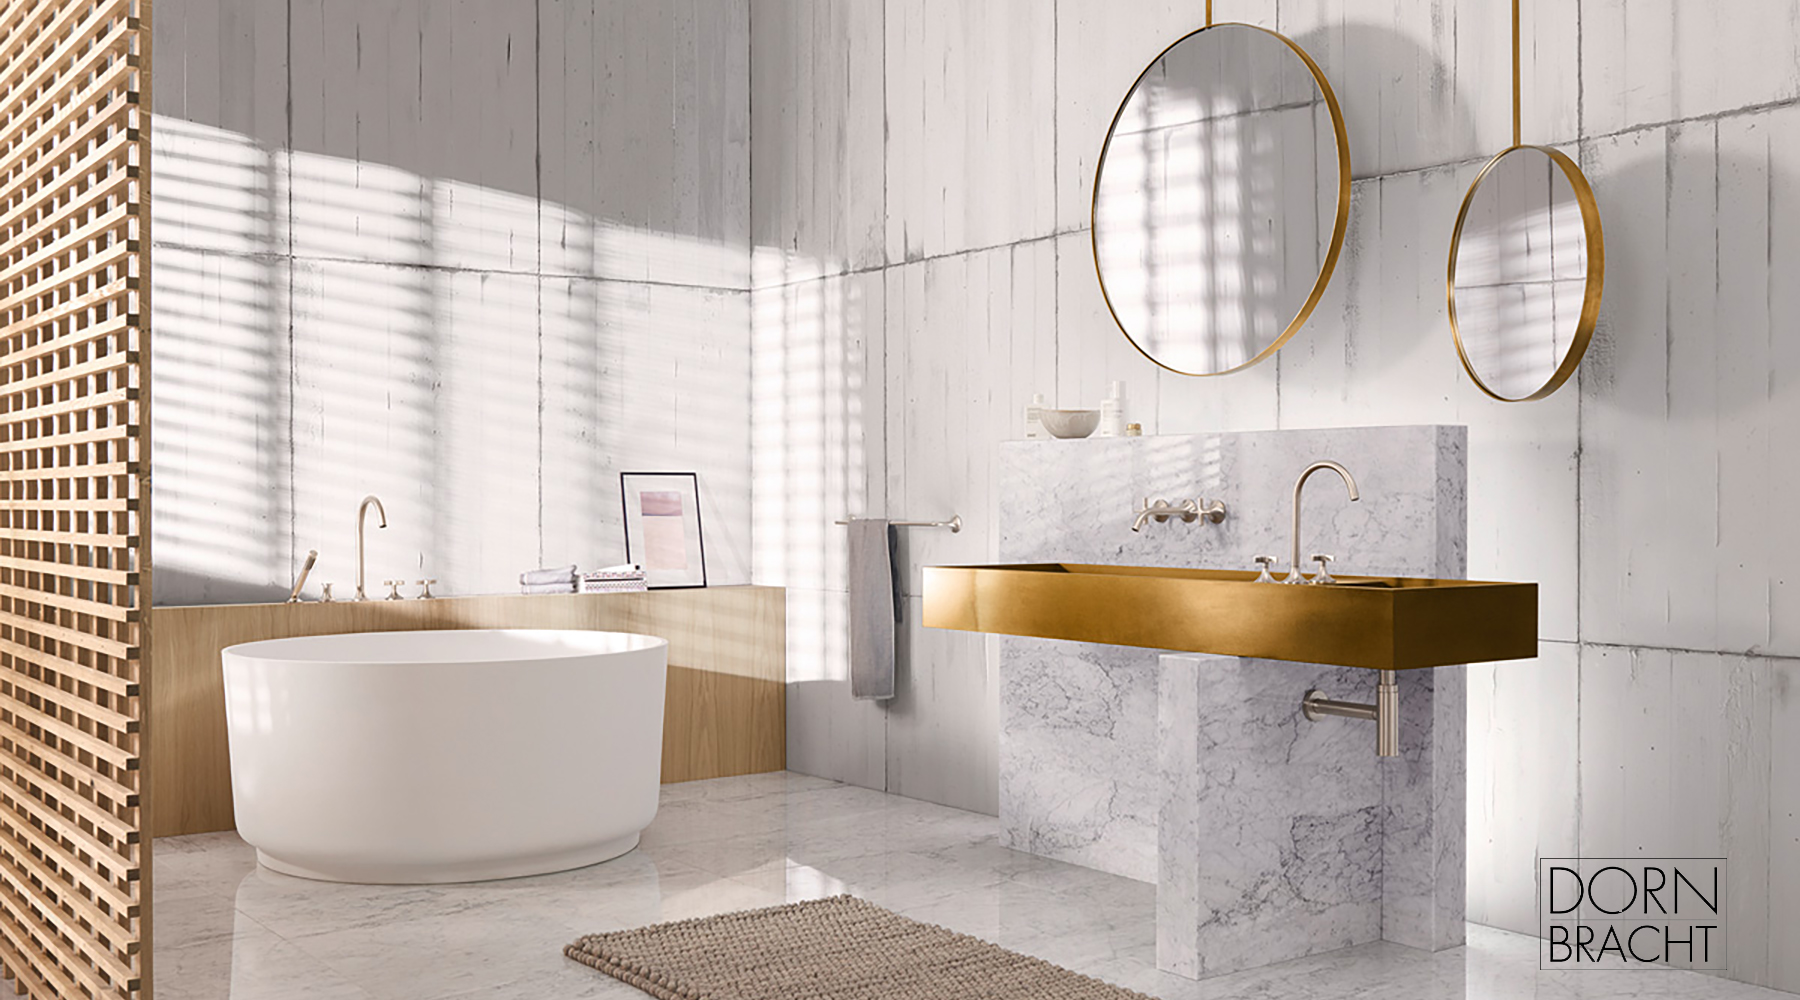 Selection Of Bath And Kitchen Products Including Faucets Hardware Accessories All The Many Fixtures That Work Together To Make Your Home Or